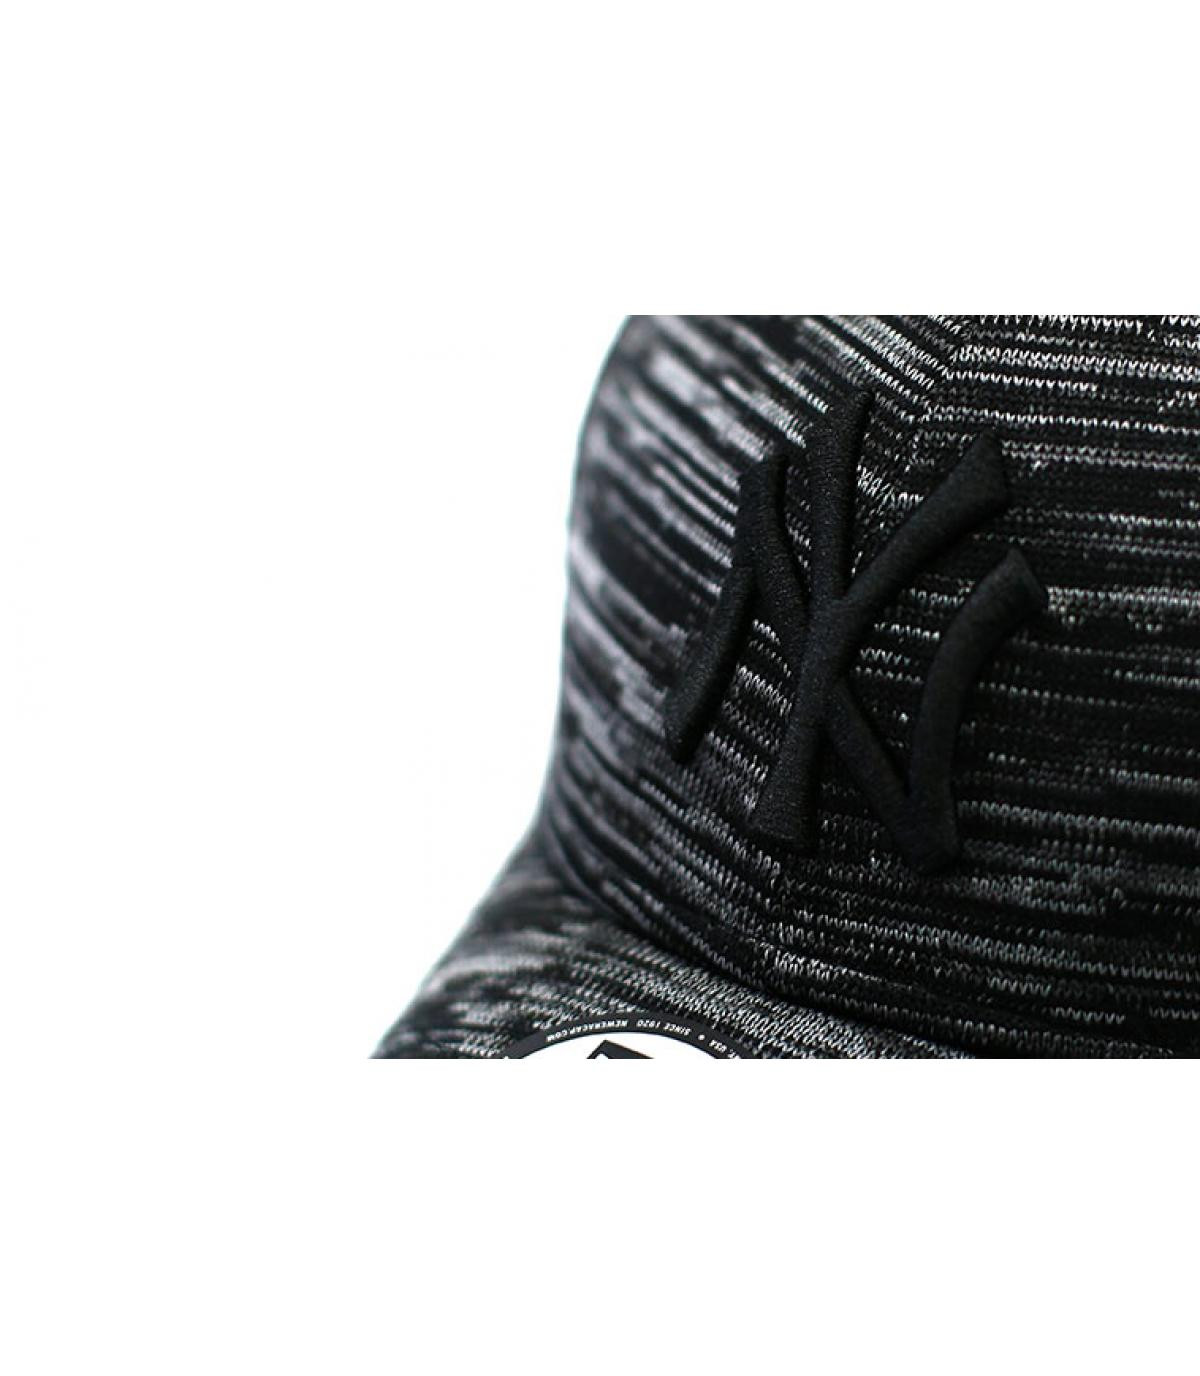 Détails Engineered Fit 9Forty NY graphite - image 3